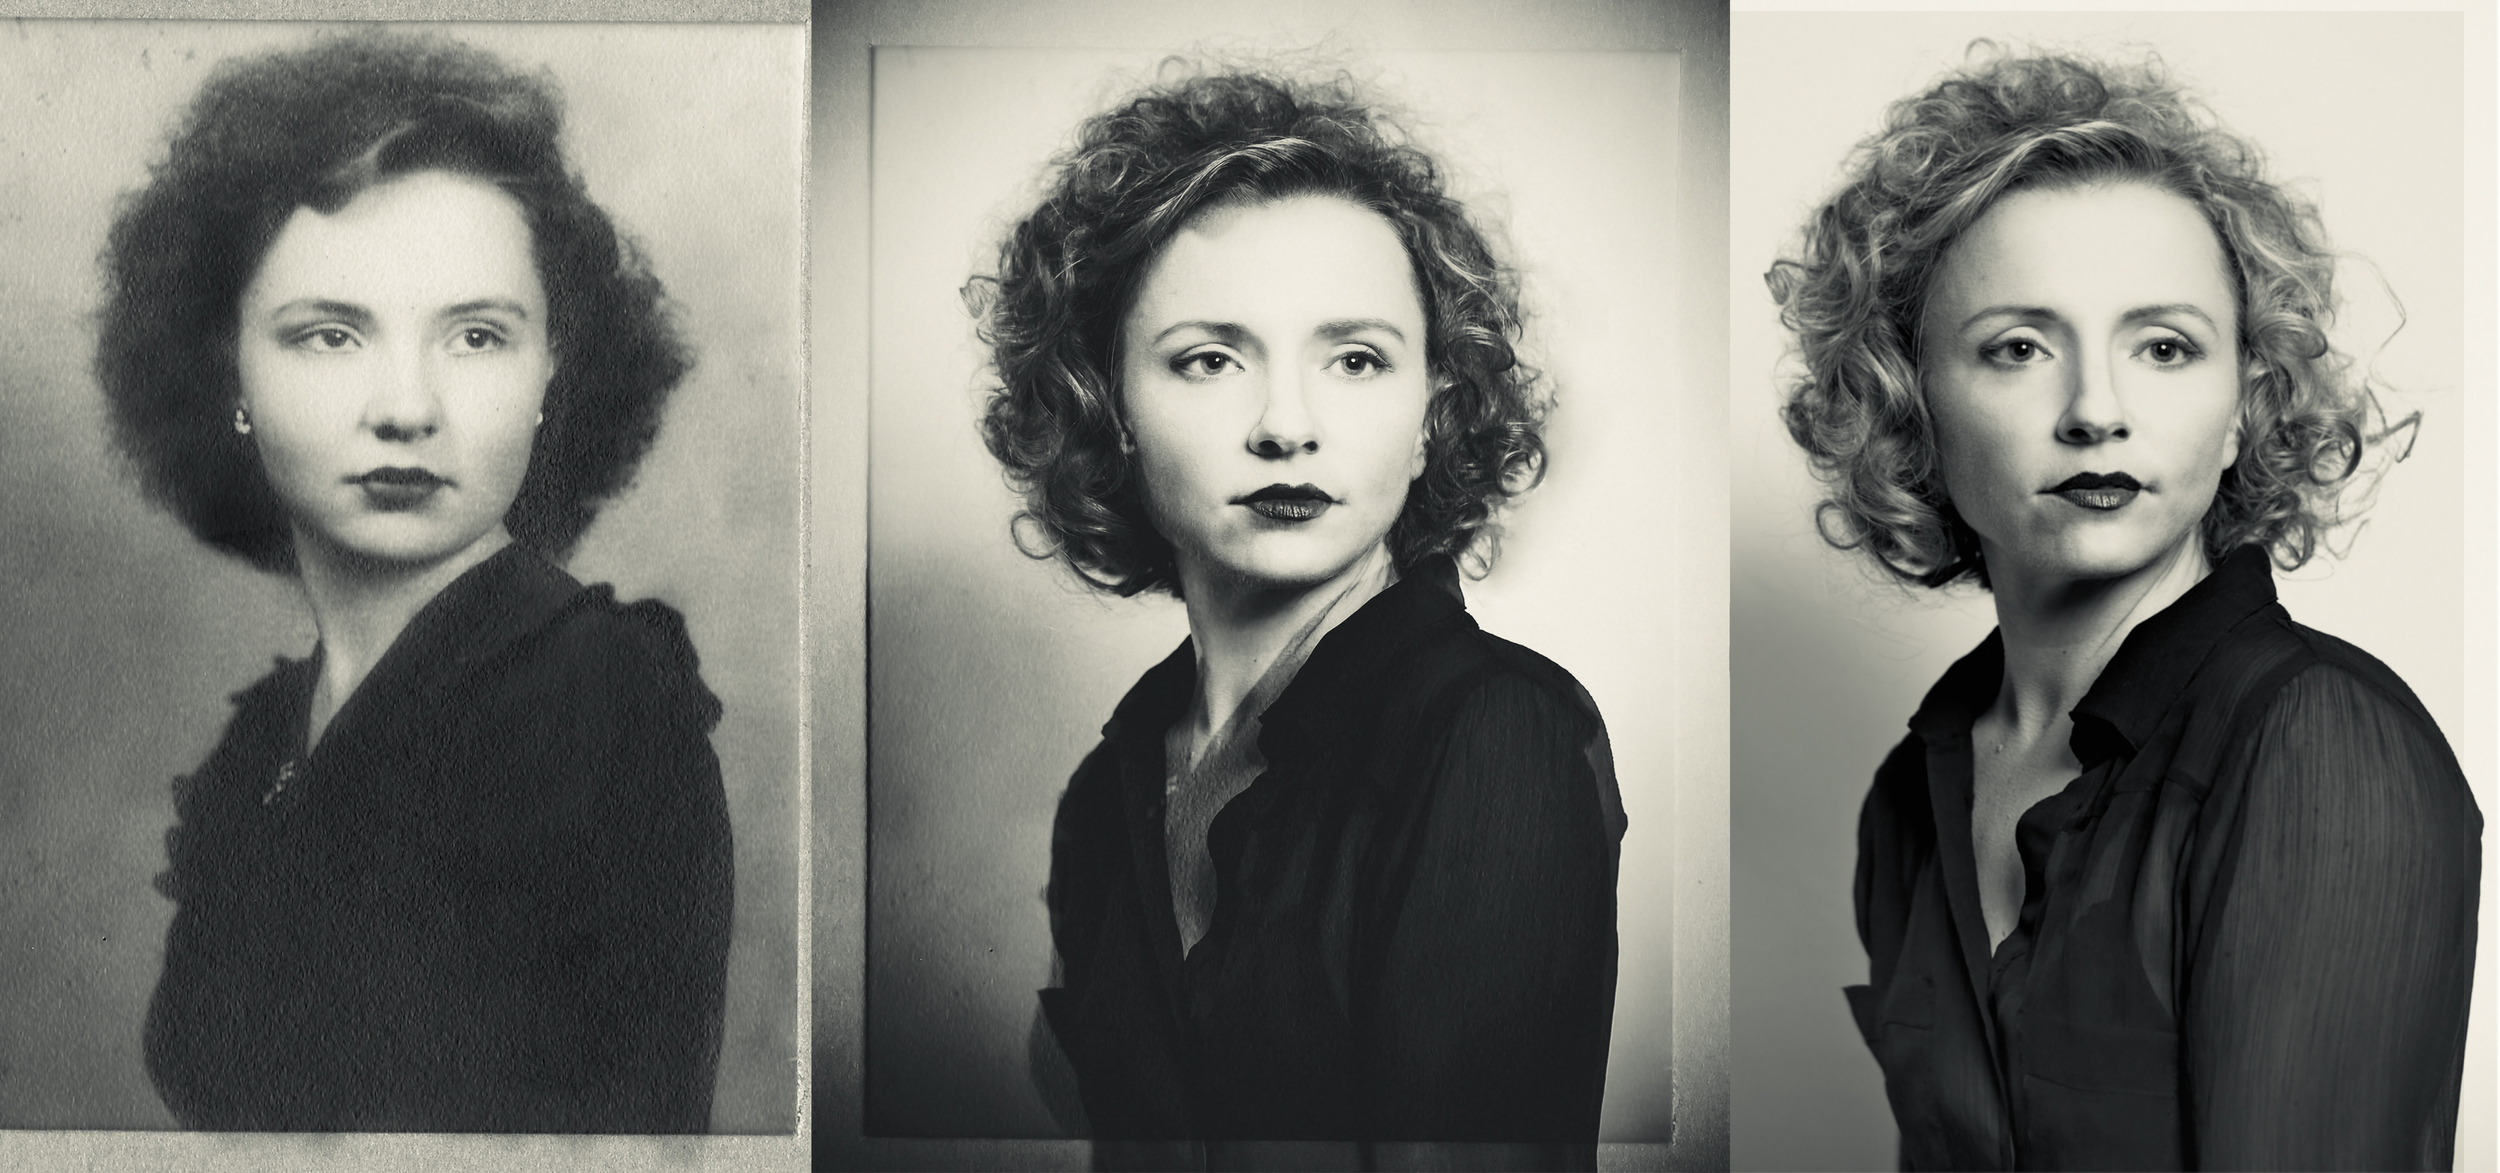 Left: Mary Alice McAfee, Age 16 (1944) Center: Composited Portrait  Right: Me, Today